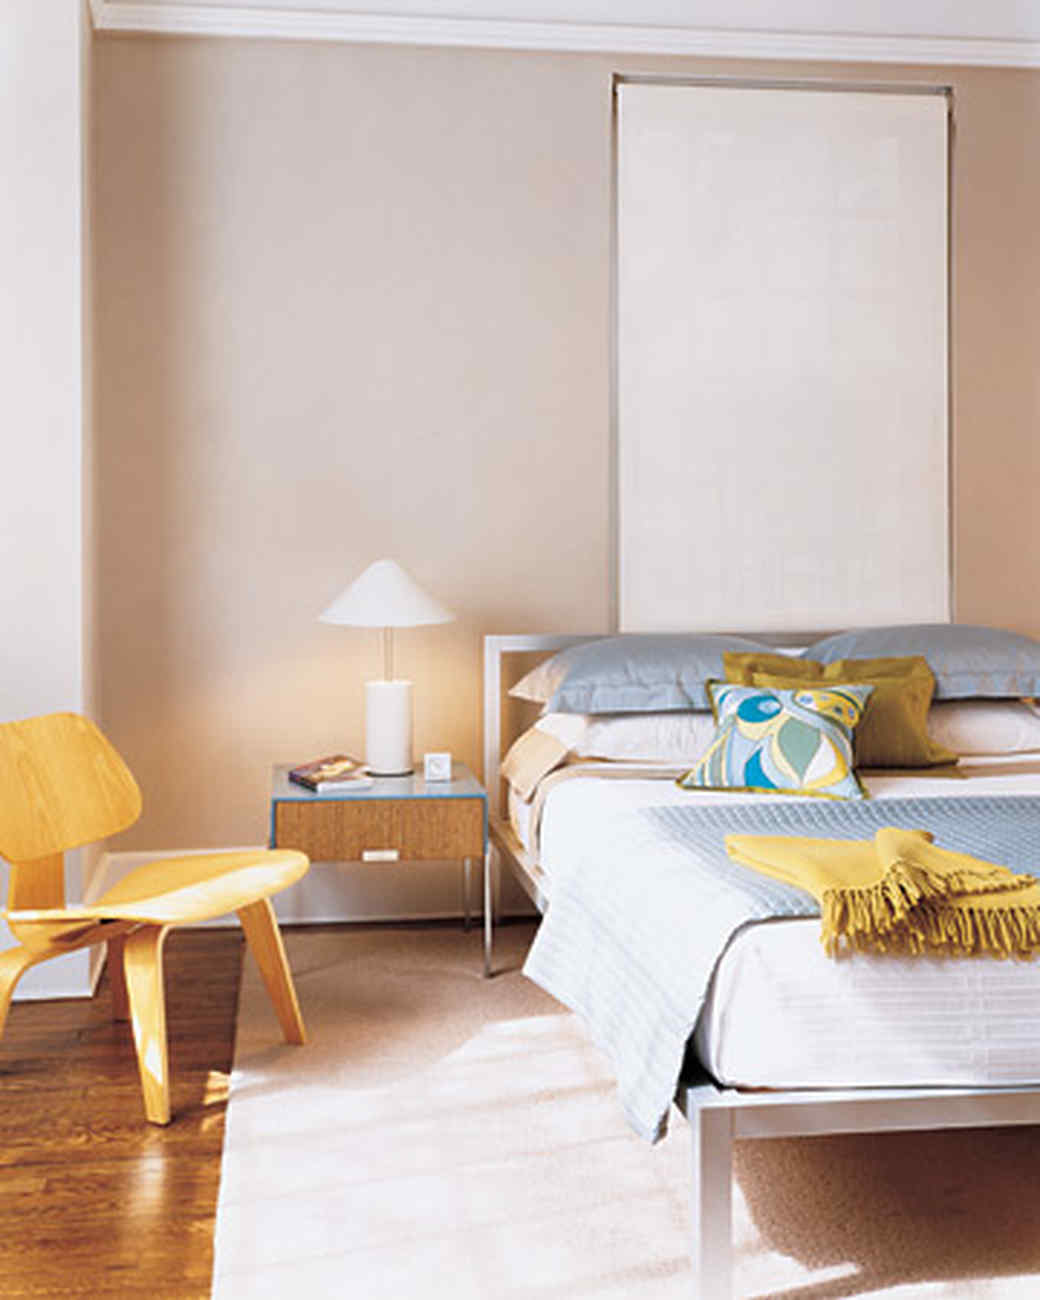 Bedroom Decorating Ideas New On Photos of Property